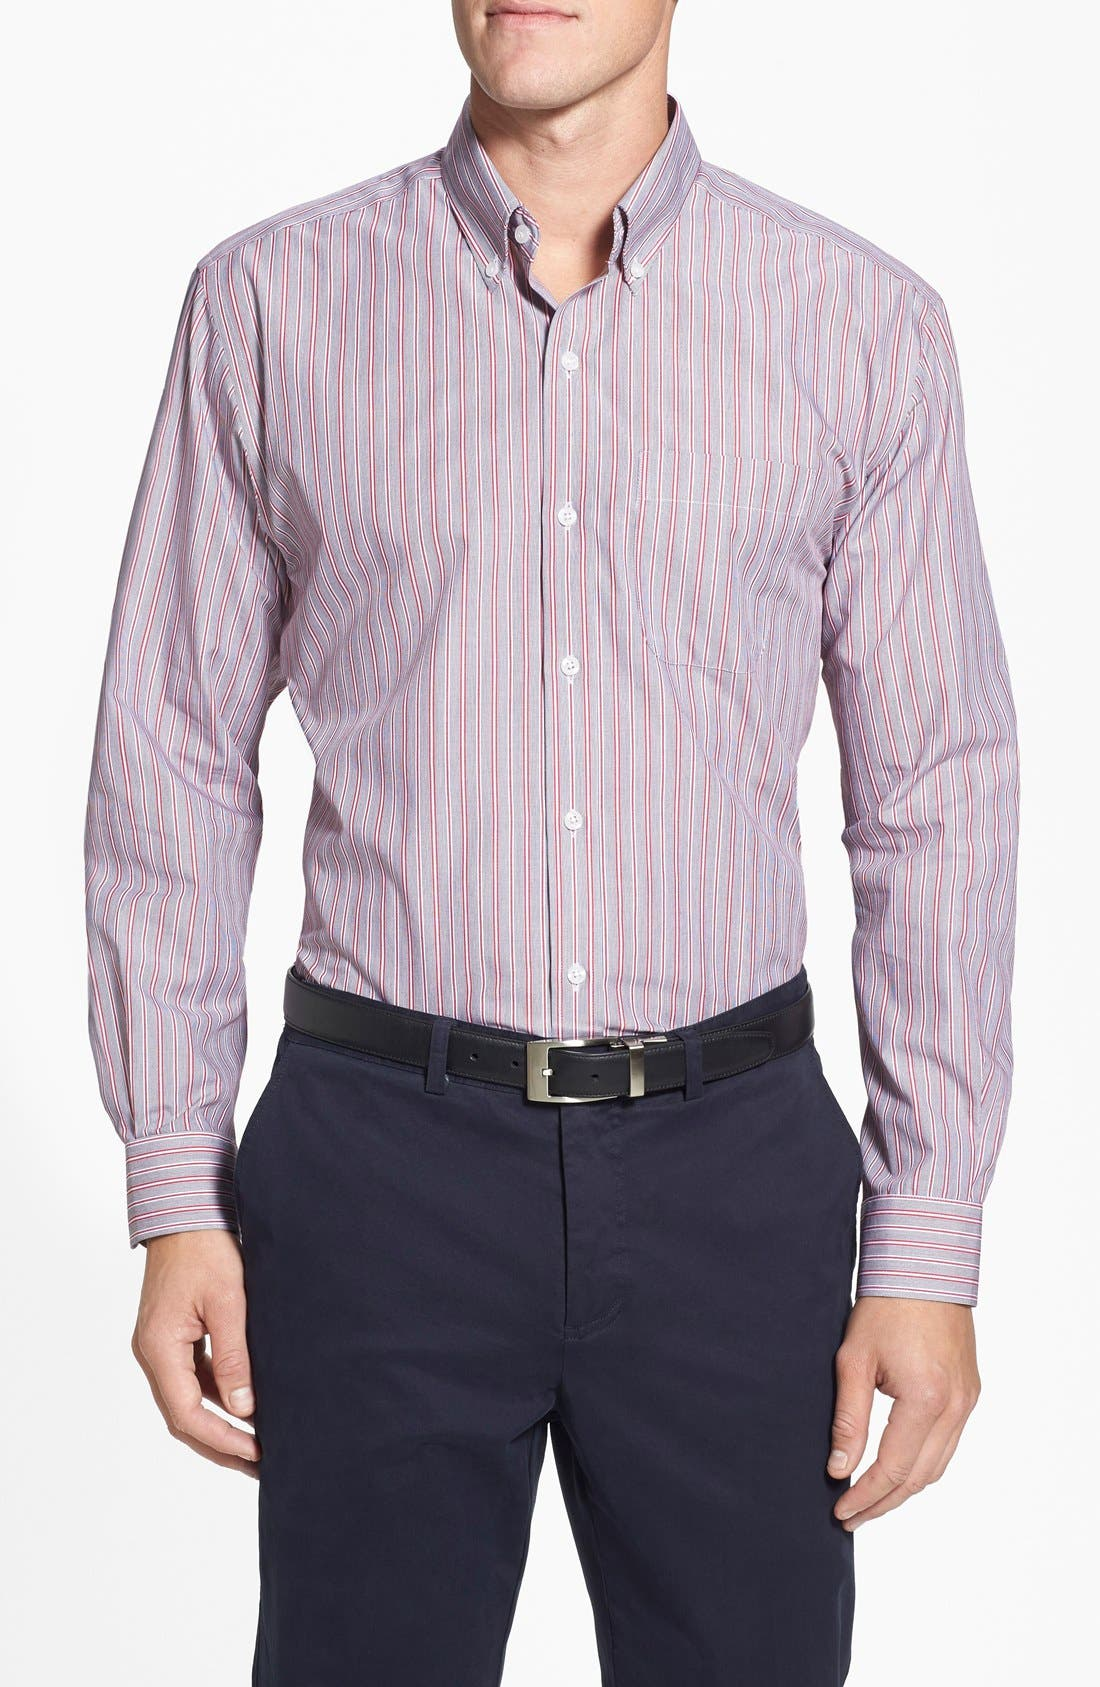 Alternate Image 1 Selected - Cutter & Buck 'Epic Easy Care' Classic Fit Wrinkle Resistant Stripe Sport Shirt